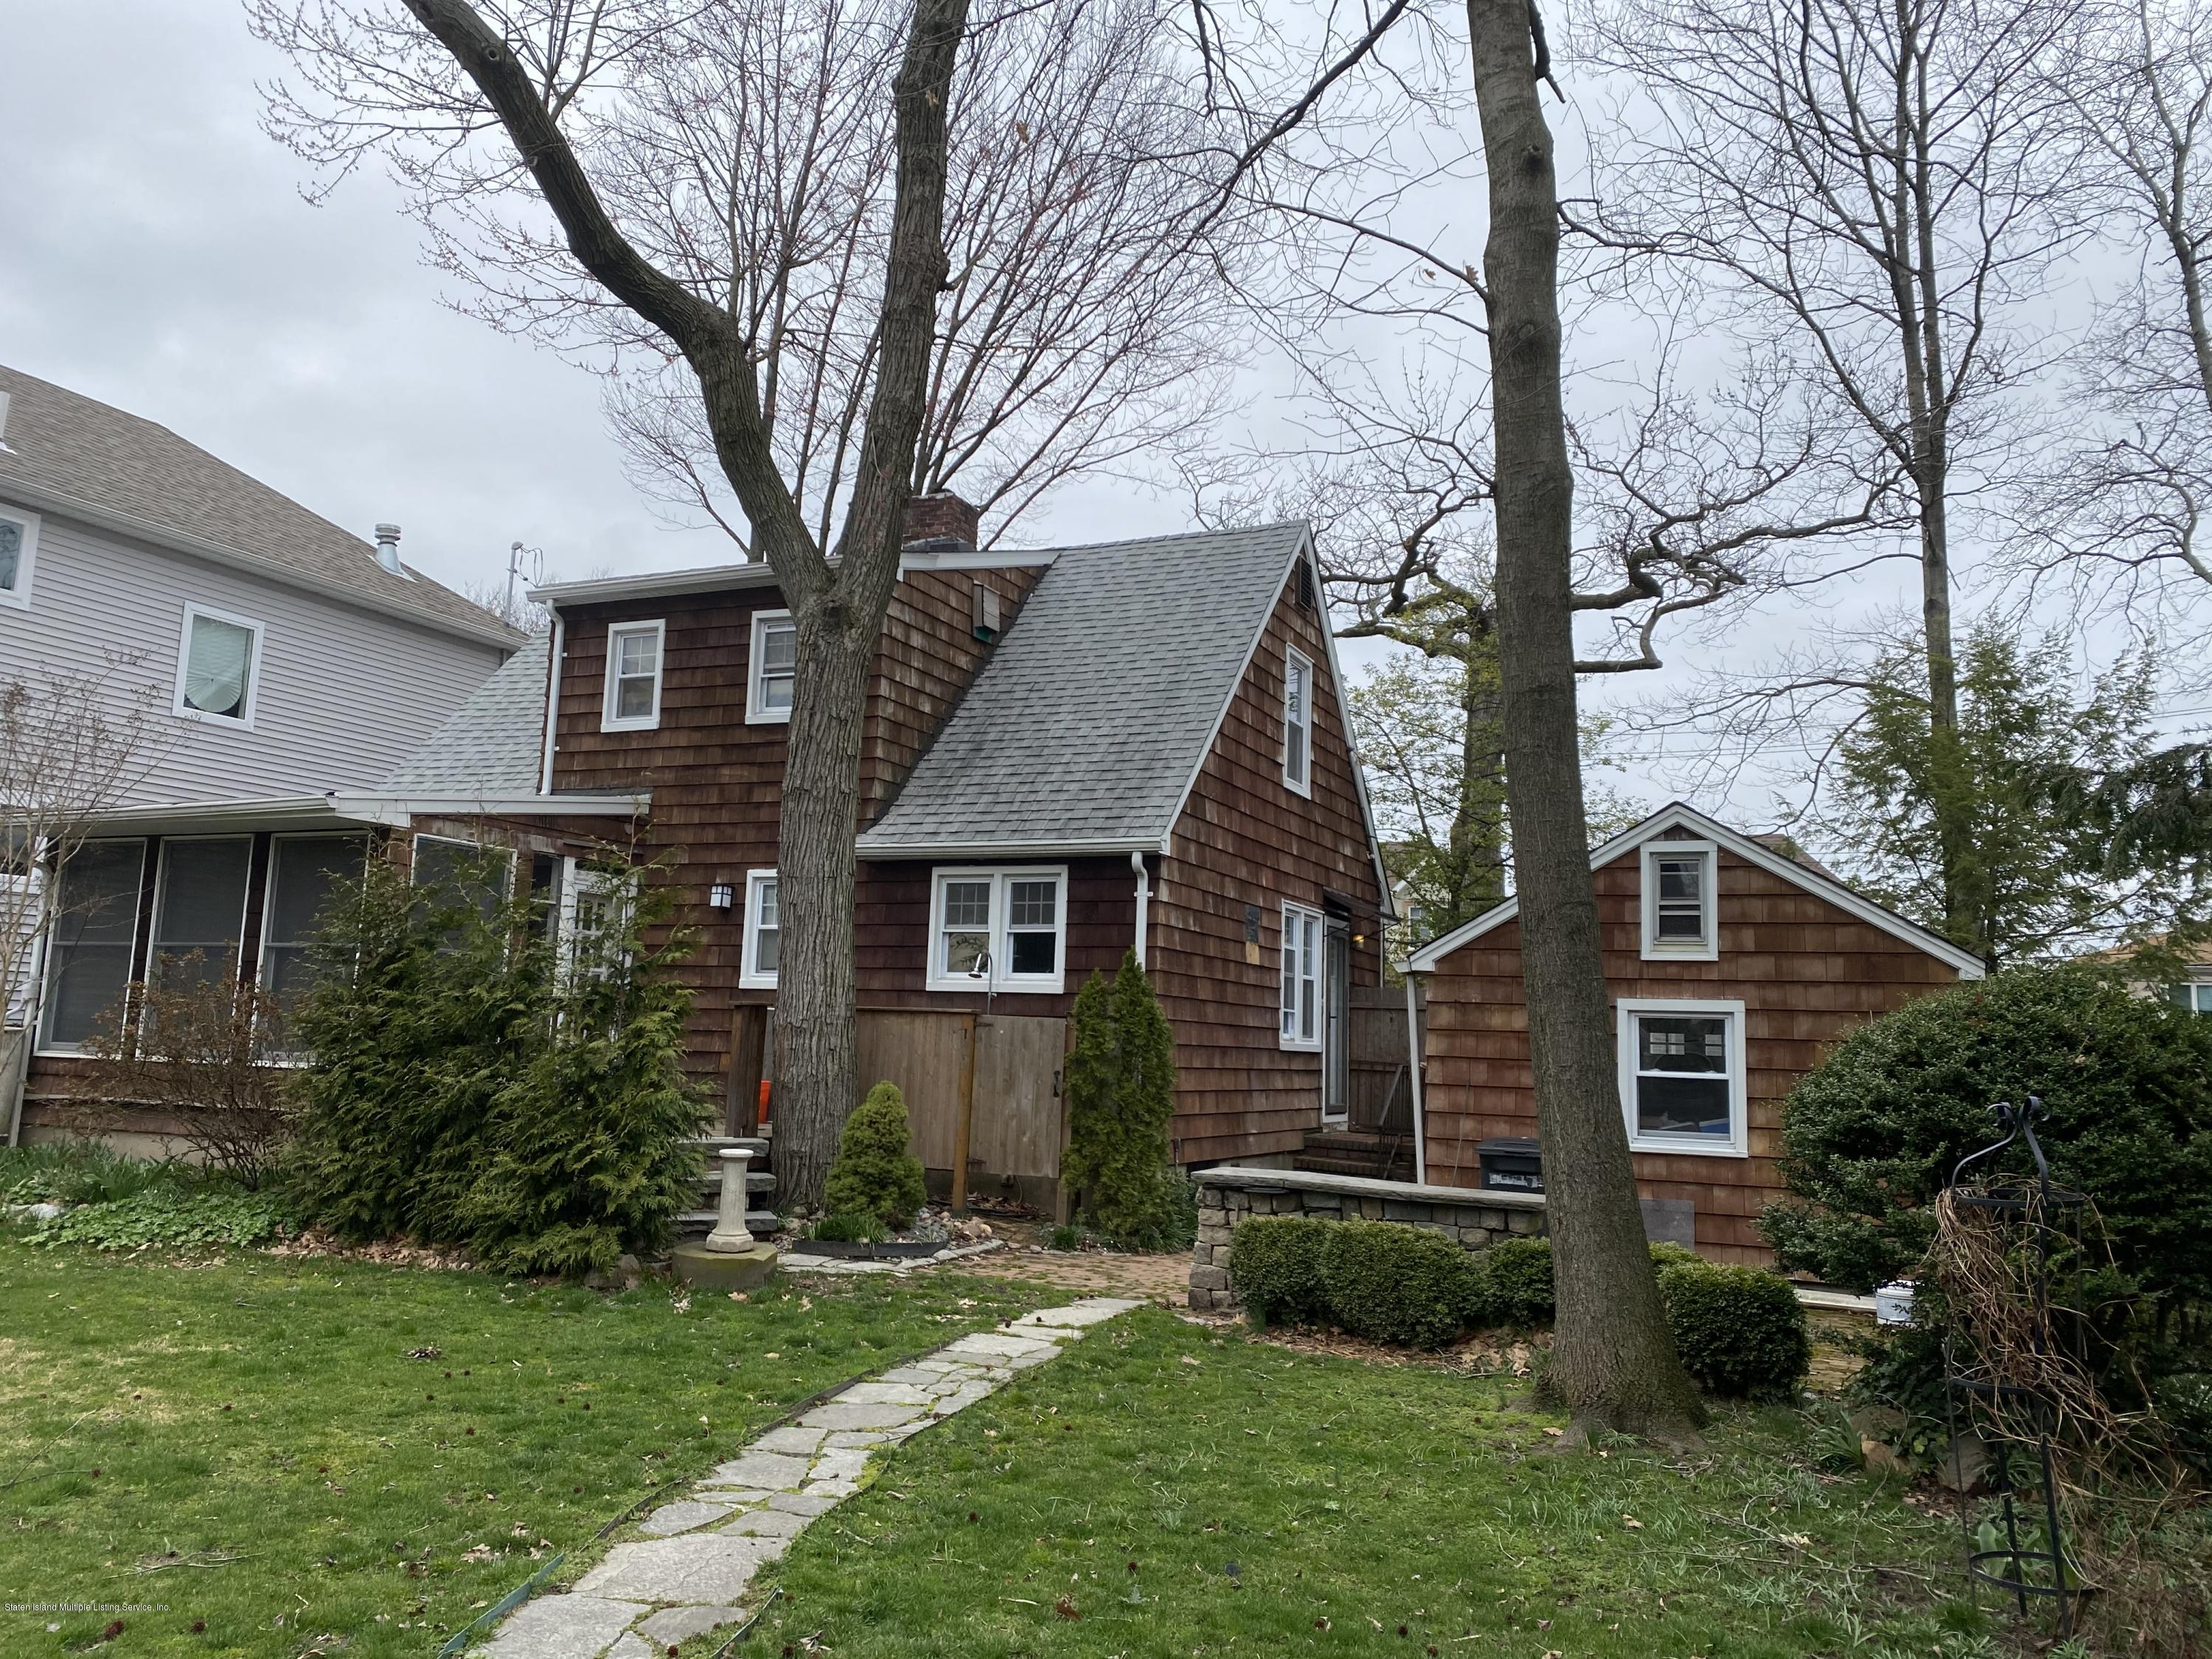 Single Family - Detached 78 Serrell Avenue  Staten Island, NY 10312, MLS-1136539-21